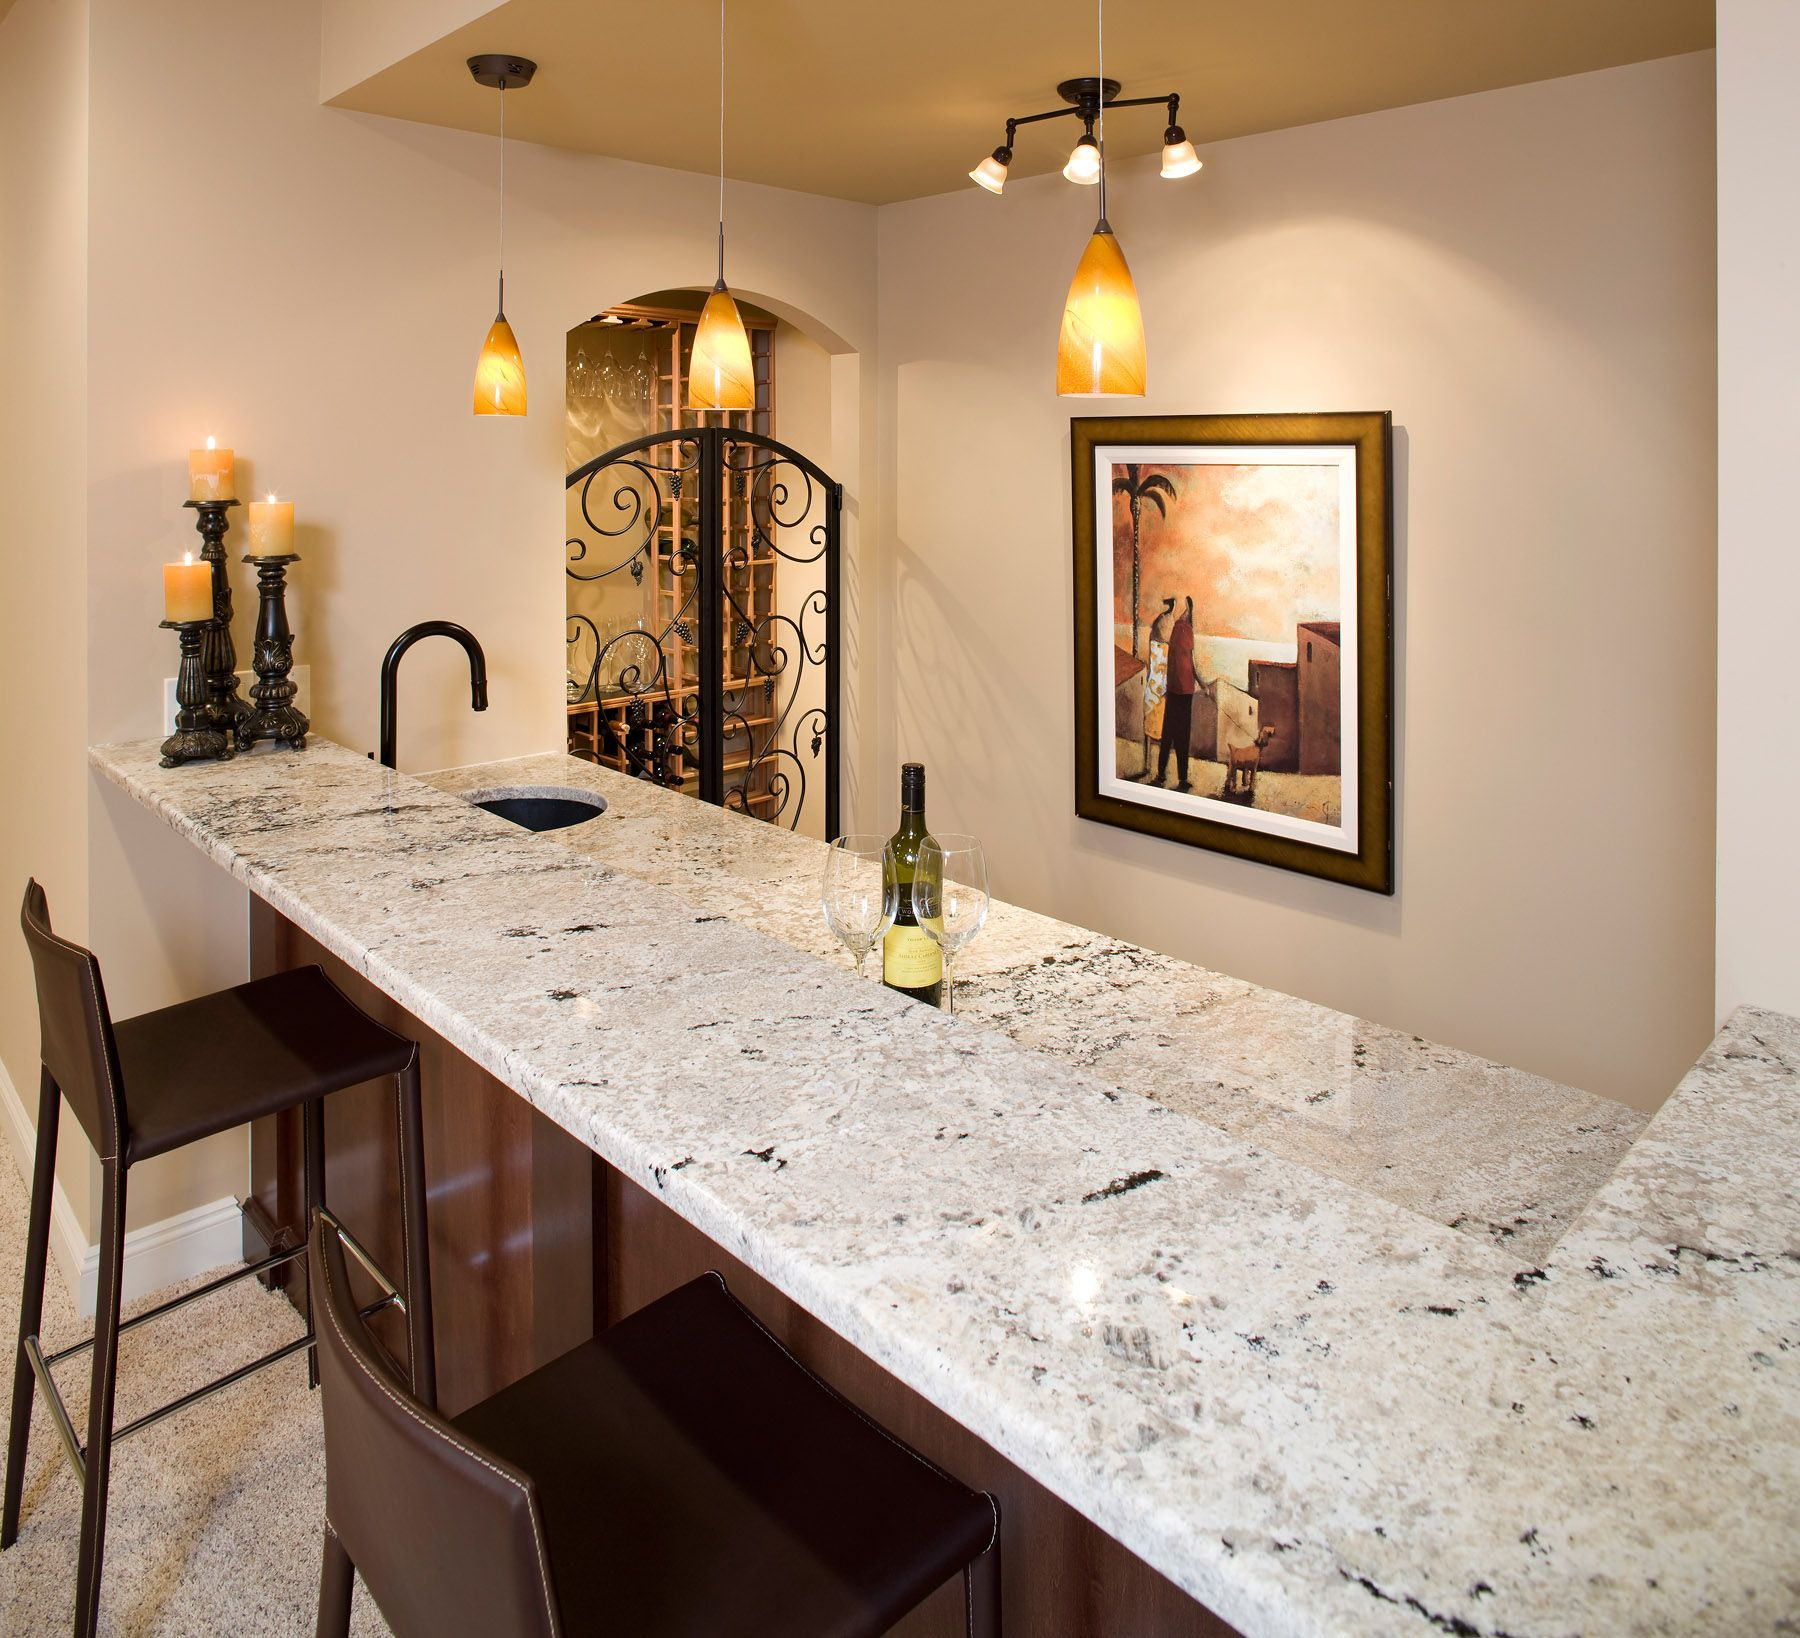 White Granite For This Home Bar Area Dahlia White Vail White Visit Globalgranite Com For Your Natural S White Granite Granite Kitchen White Granite Kitchen